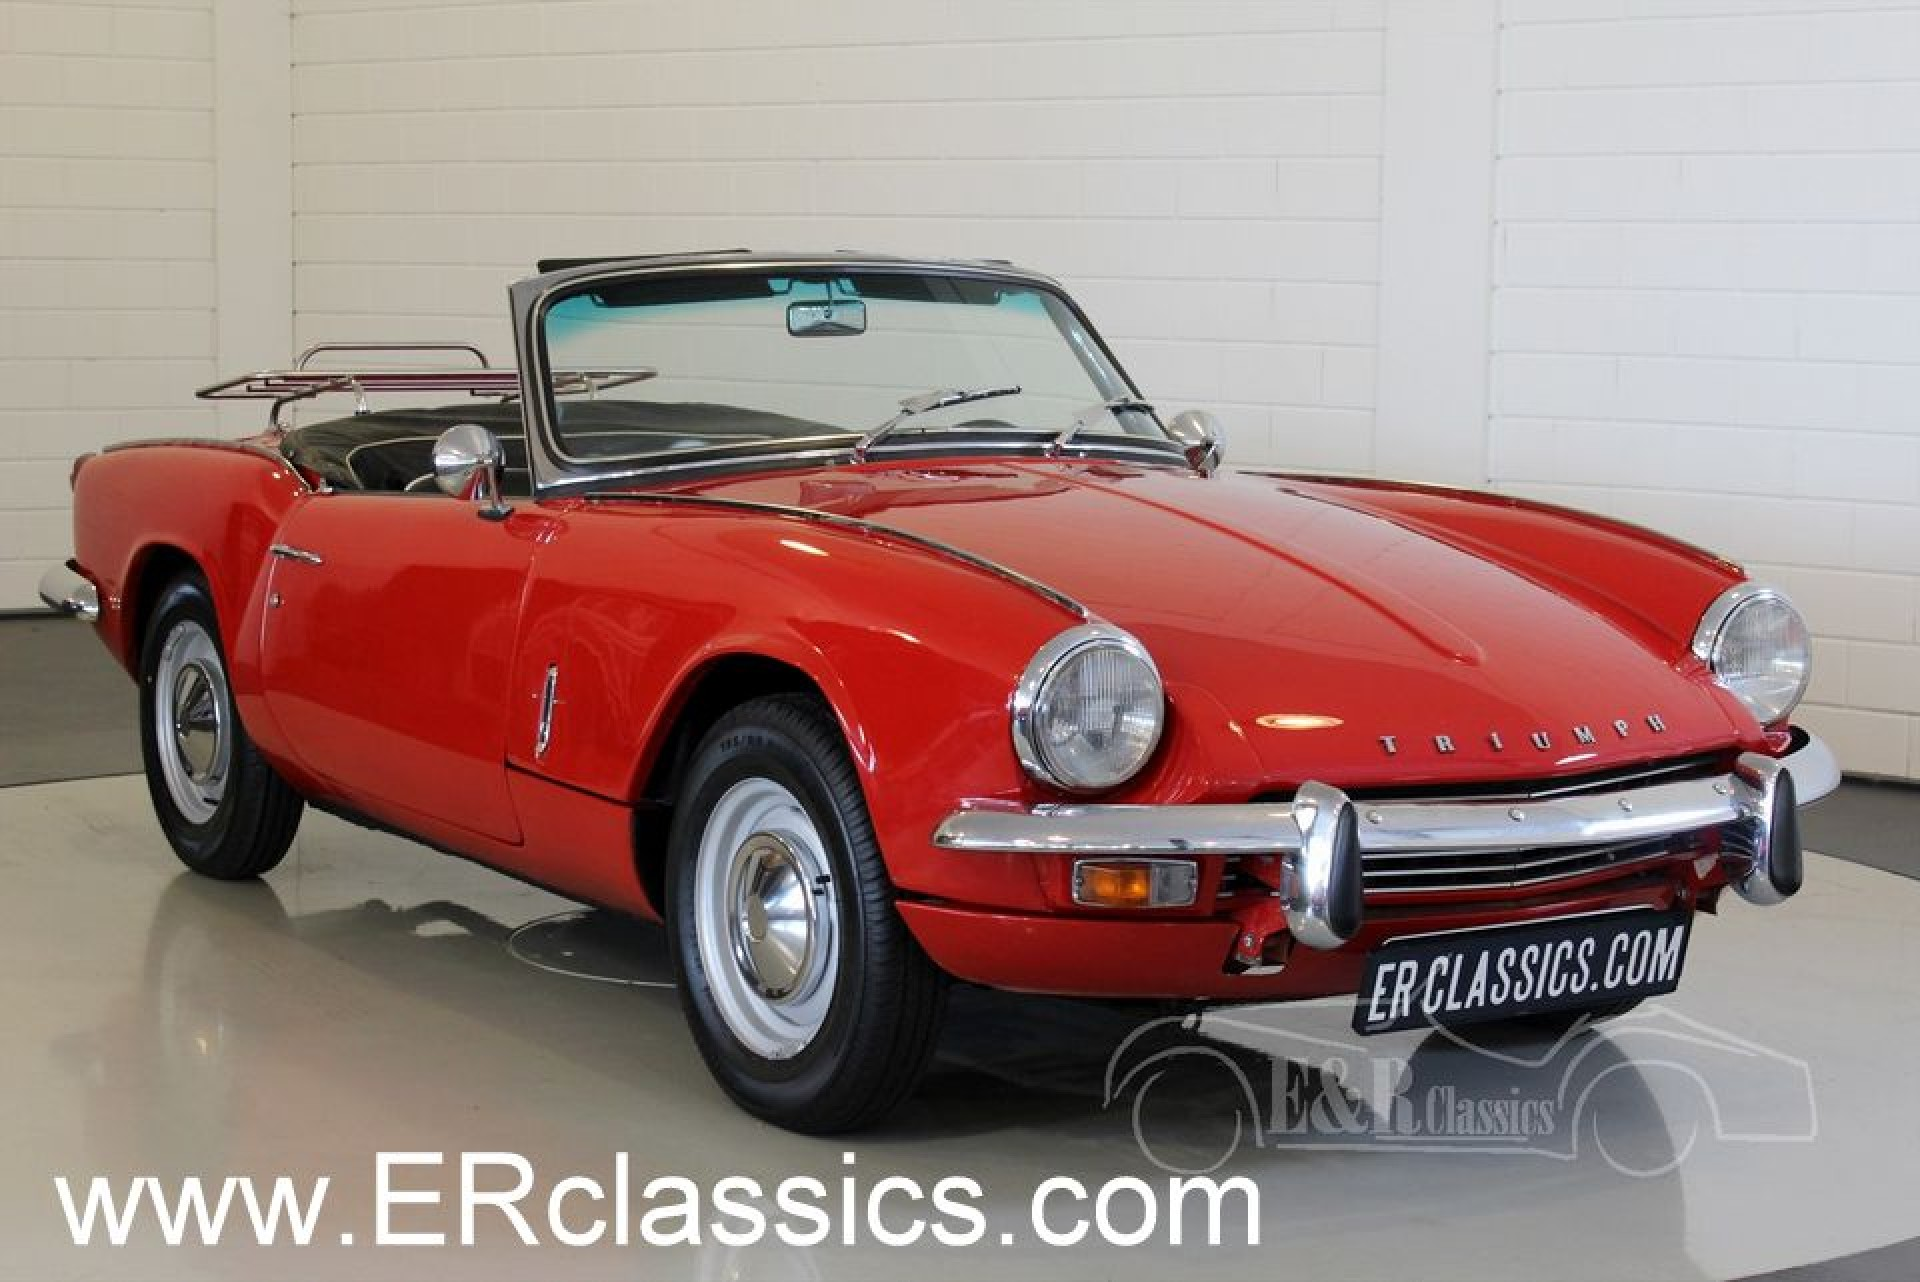 triumph spitfire mkiii cabriolet 1968 vendre erclassics. Black Bedroom Furniture Sets. Home Design Ideas